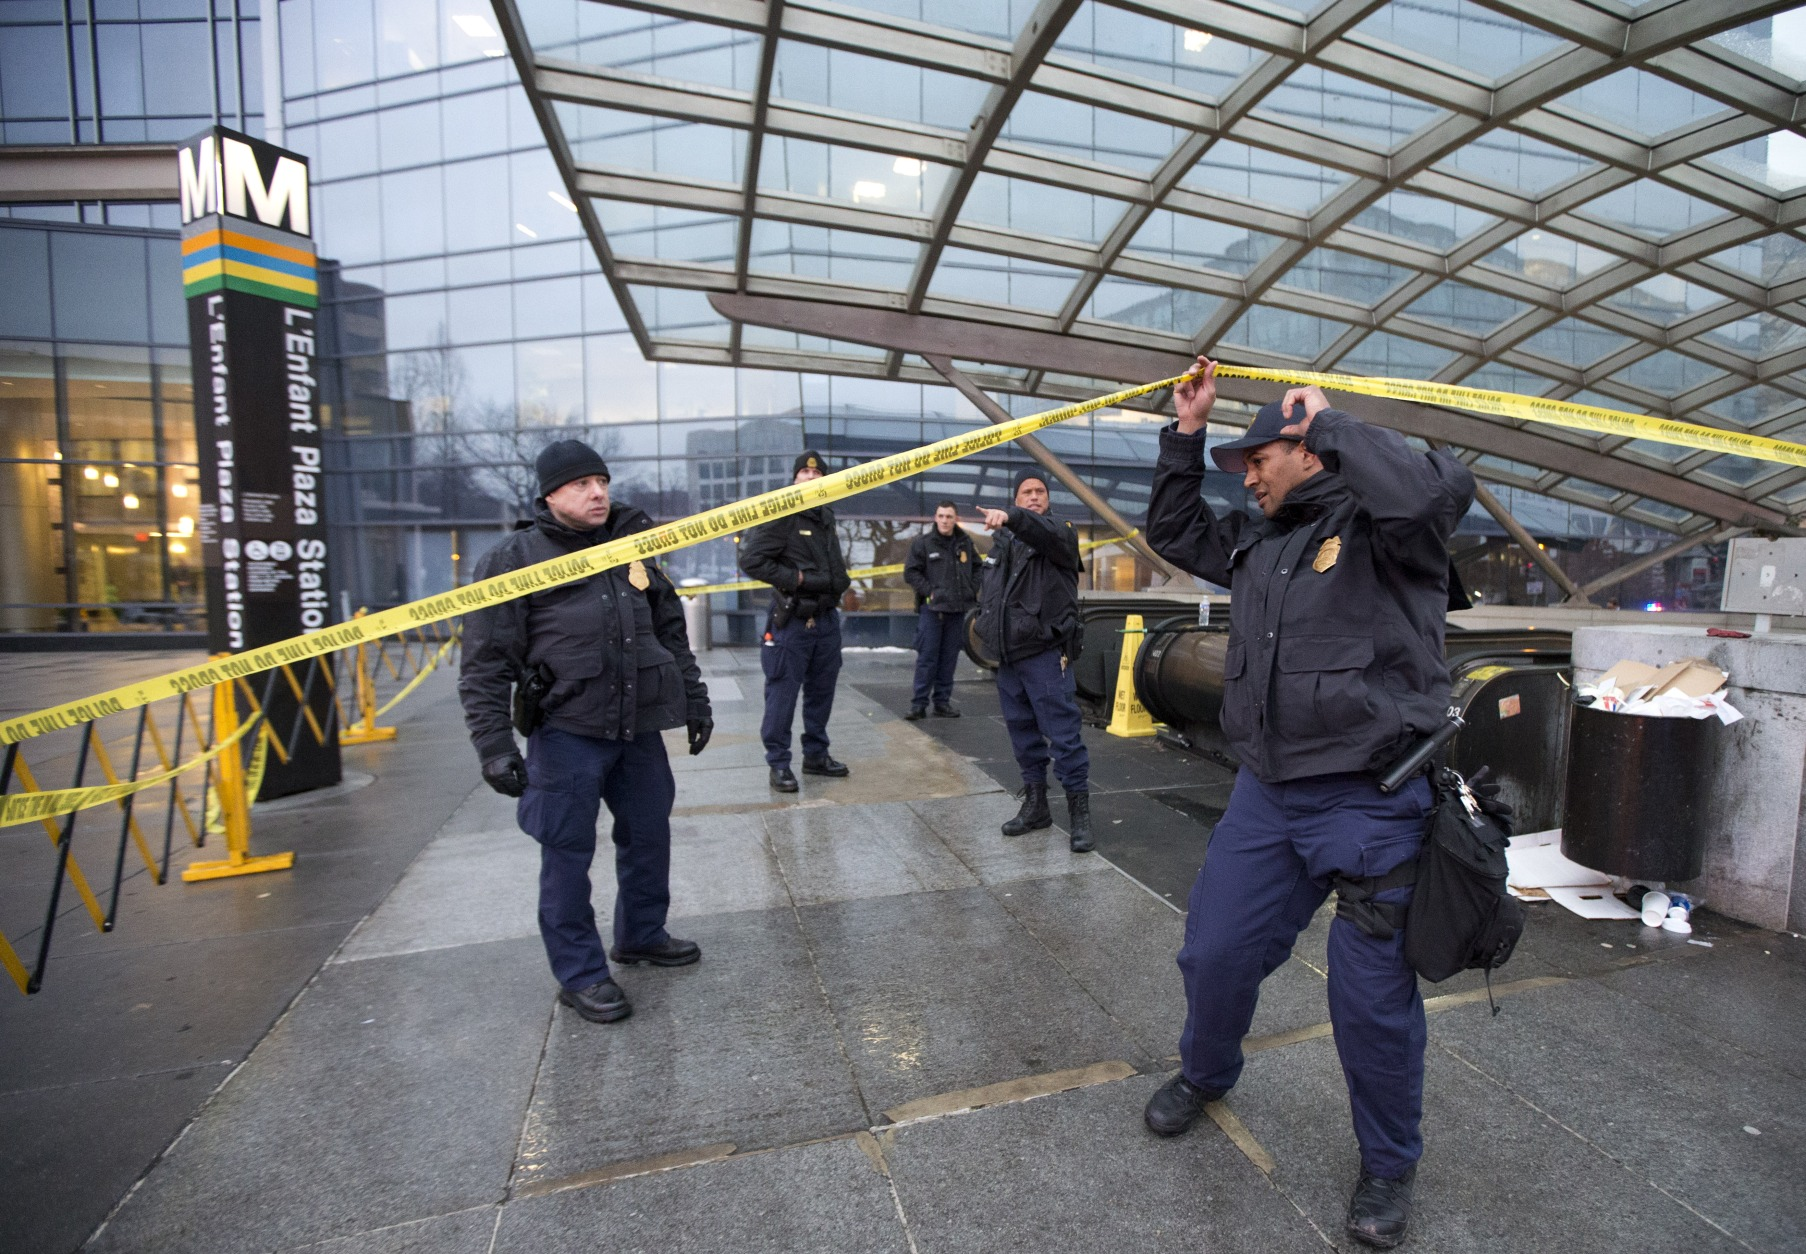 Officers secure the entrance to L'Enfant Plaza Station in Washington, Monday, Jan. 12, 2015, following an evacuation. Metro officials say one of the busiest stations in downtown Washington has been evacuated because of smoke. Authorities say the source of the smoke is unknown. (AP Photo/Manuel Balce Ceneta)